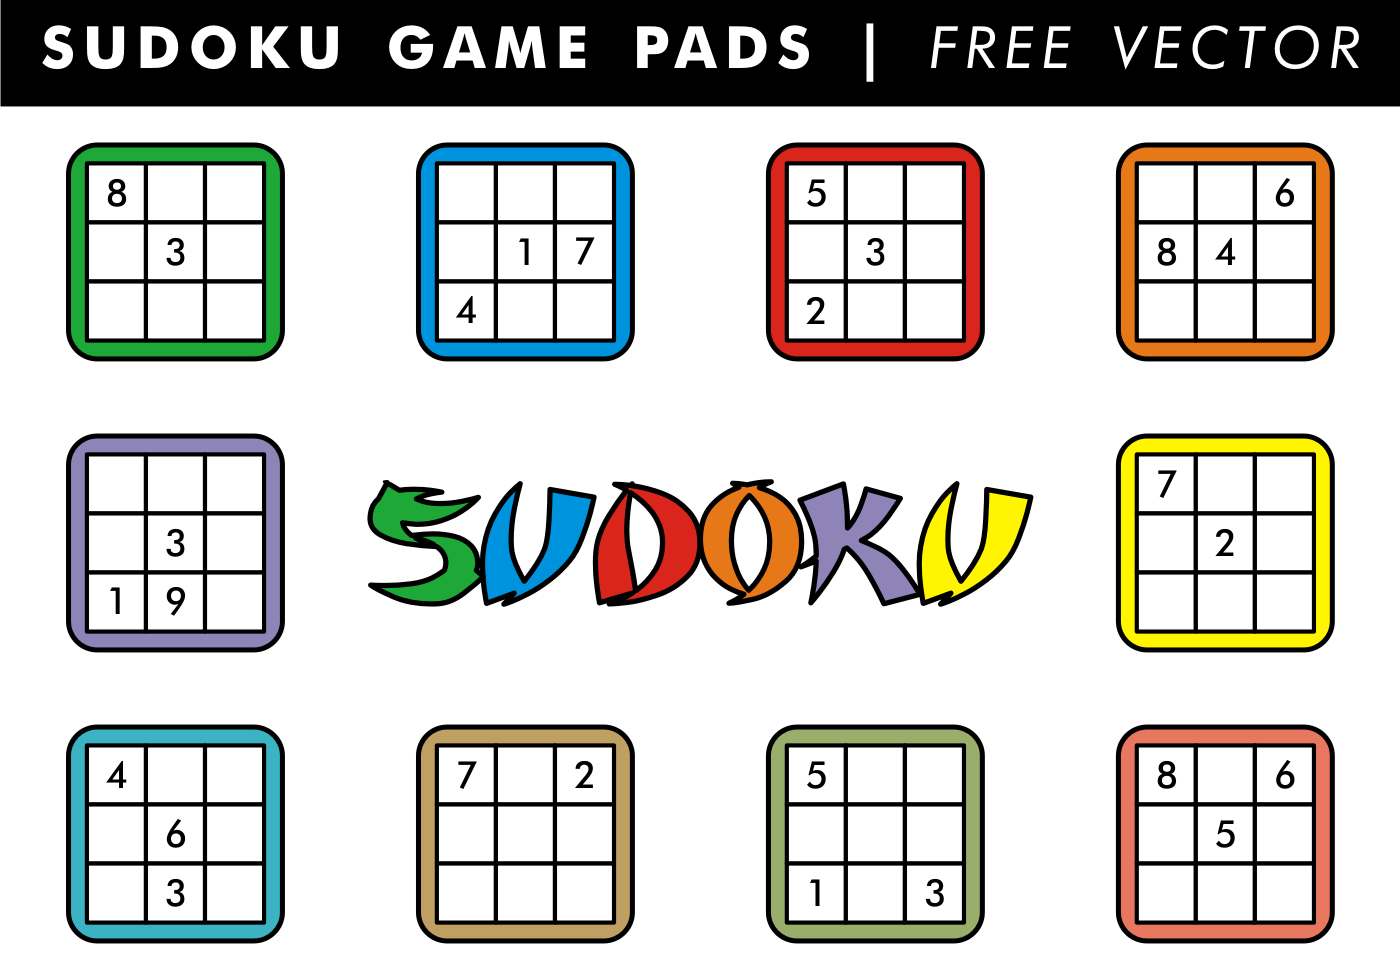 Vector Drawing Lines Games : Sudoku game pads free vector download art